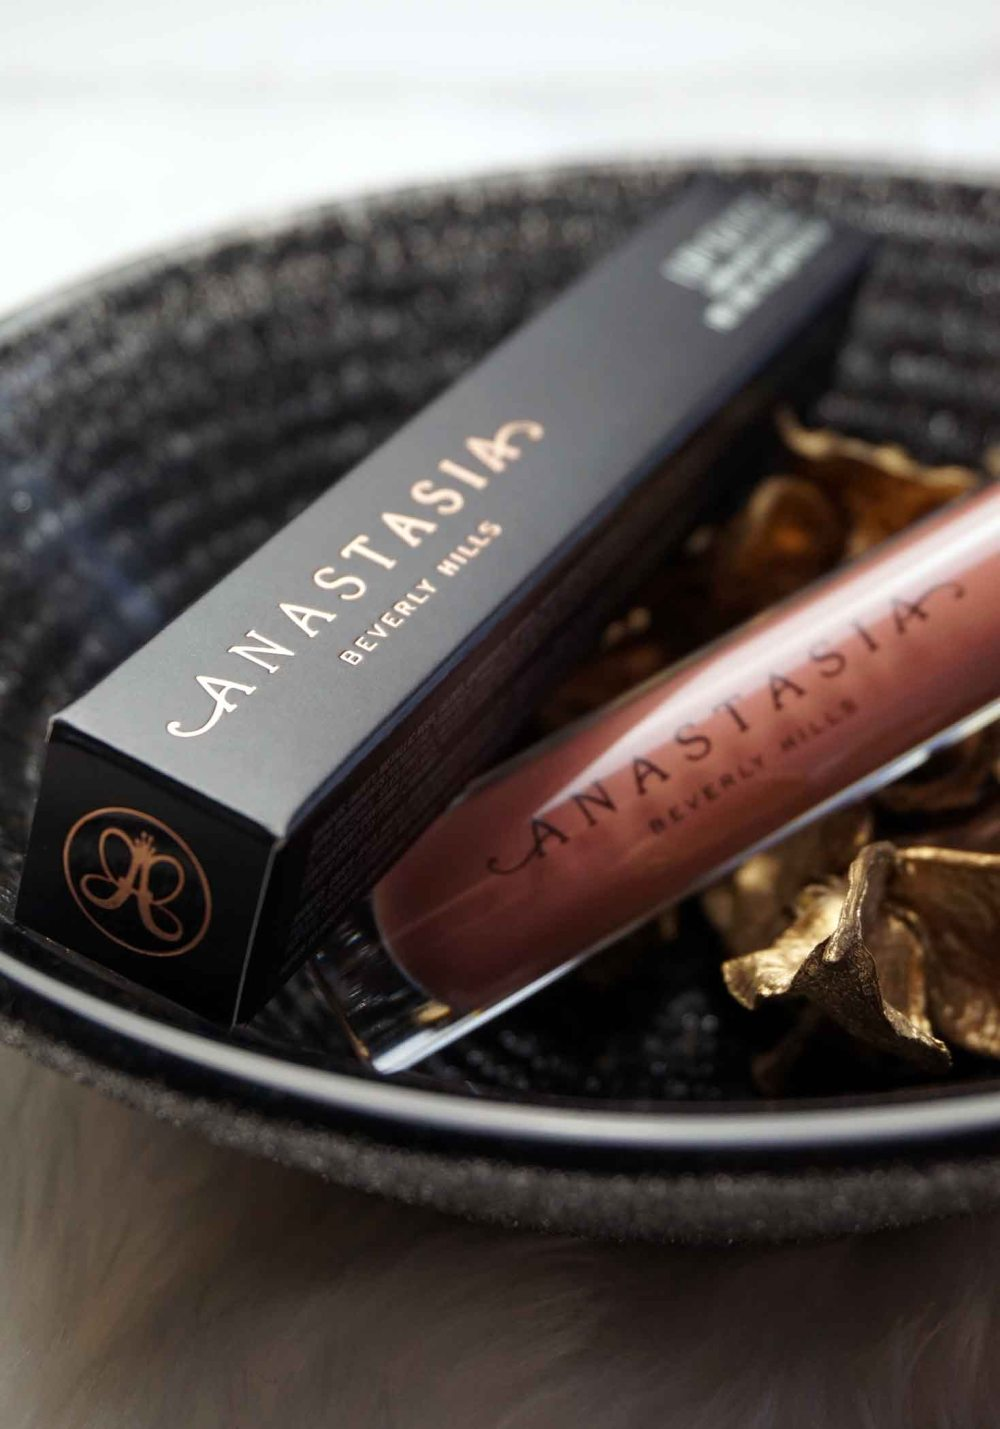 abh lipgloss toffee review.jpg